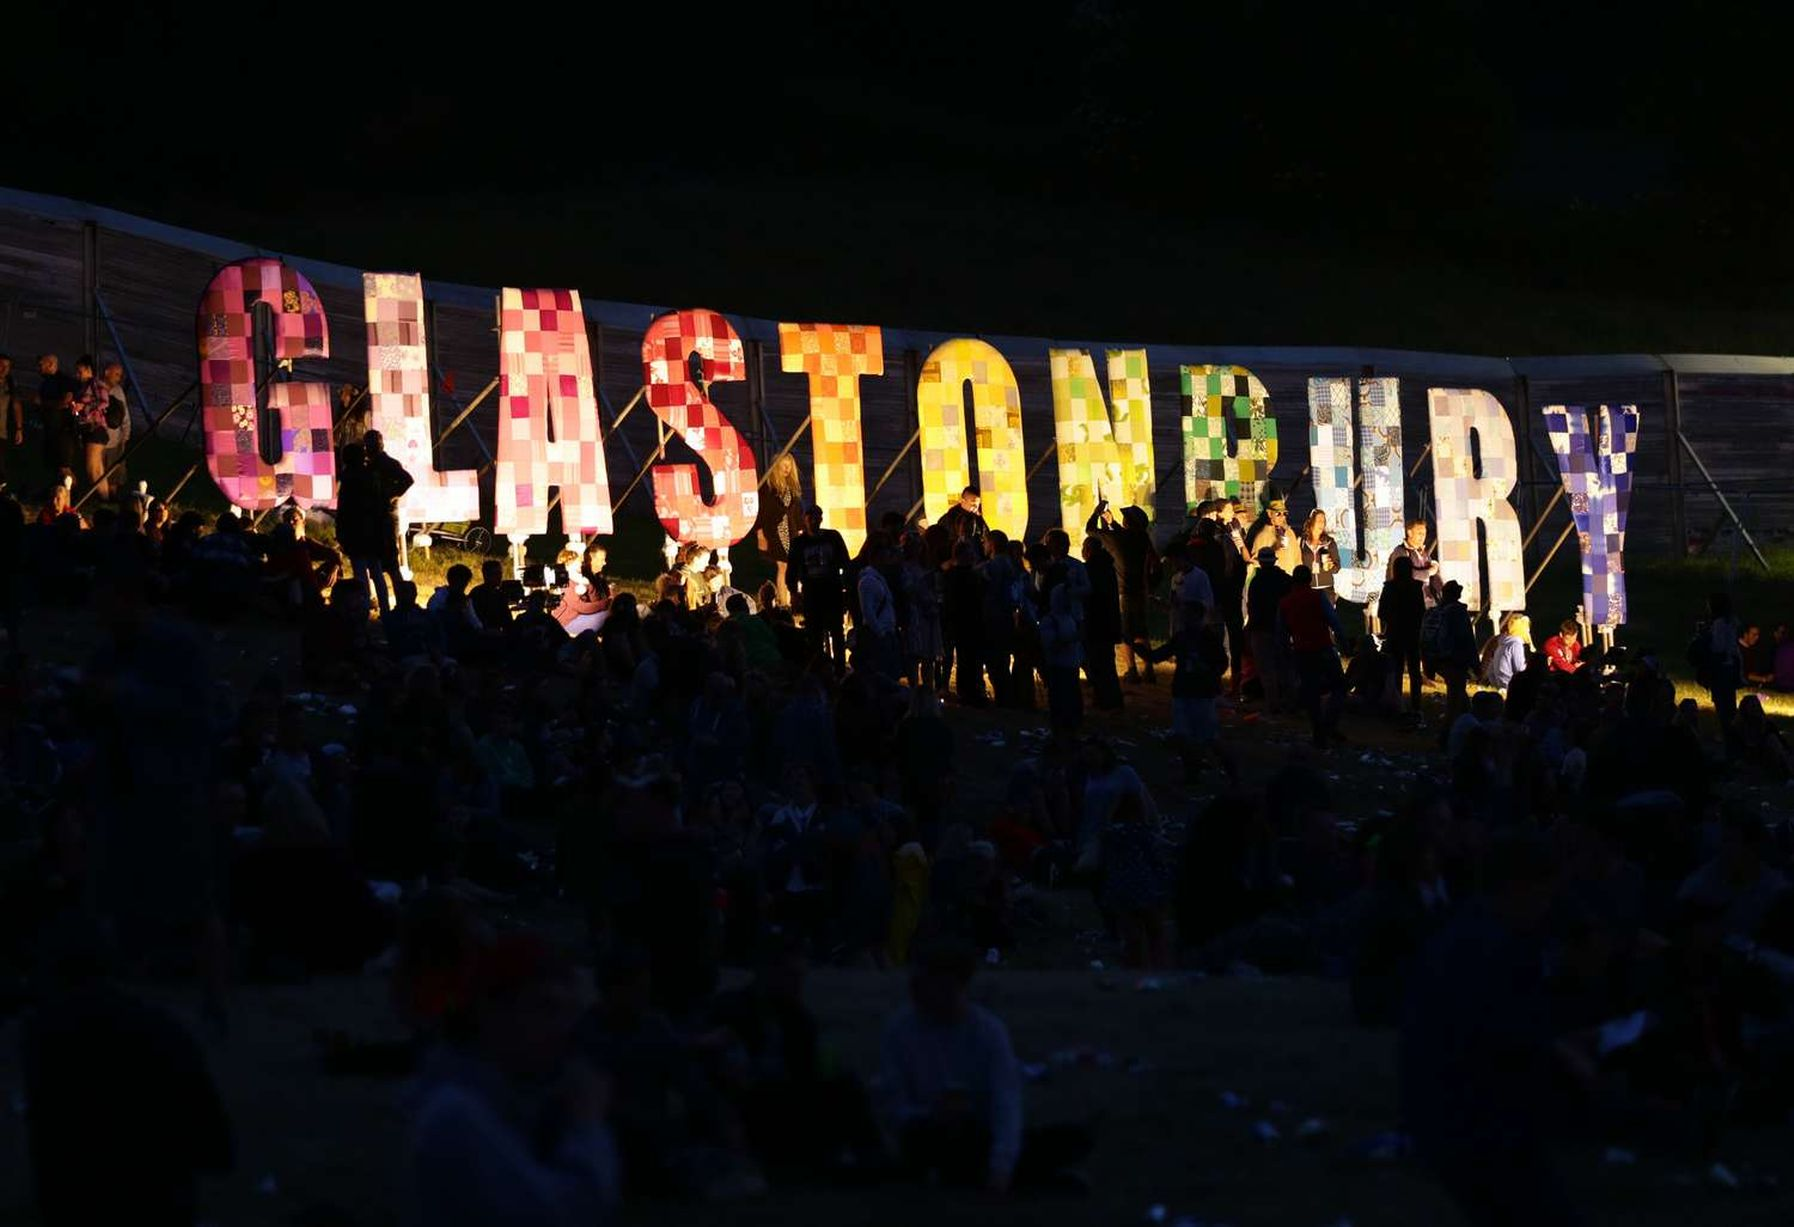 TICKETS: The April resale is the last chance for hopefuls to get tickets to Glastonbury